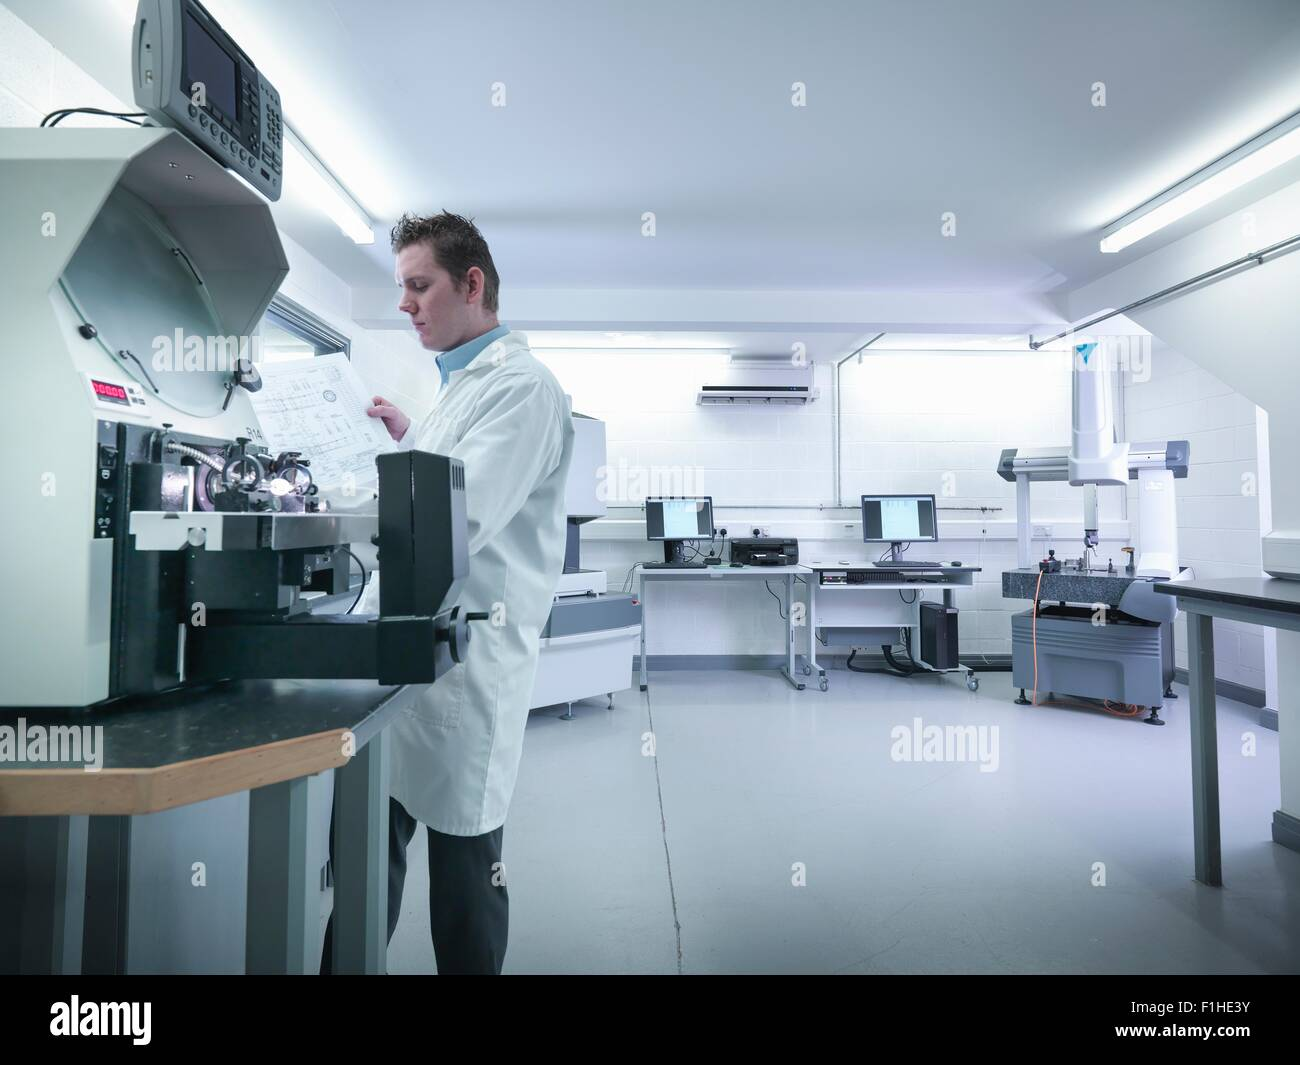 Quality control engineer measuring parts in quality control room - Stock Image